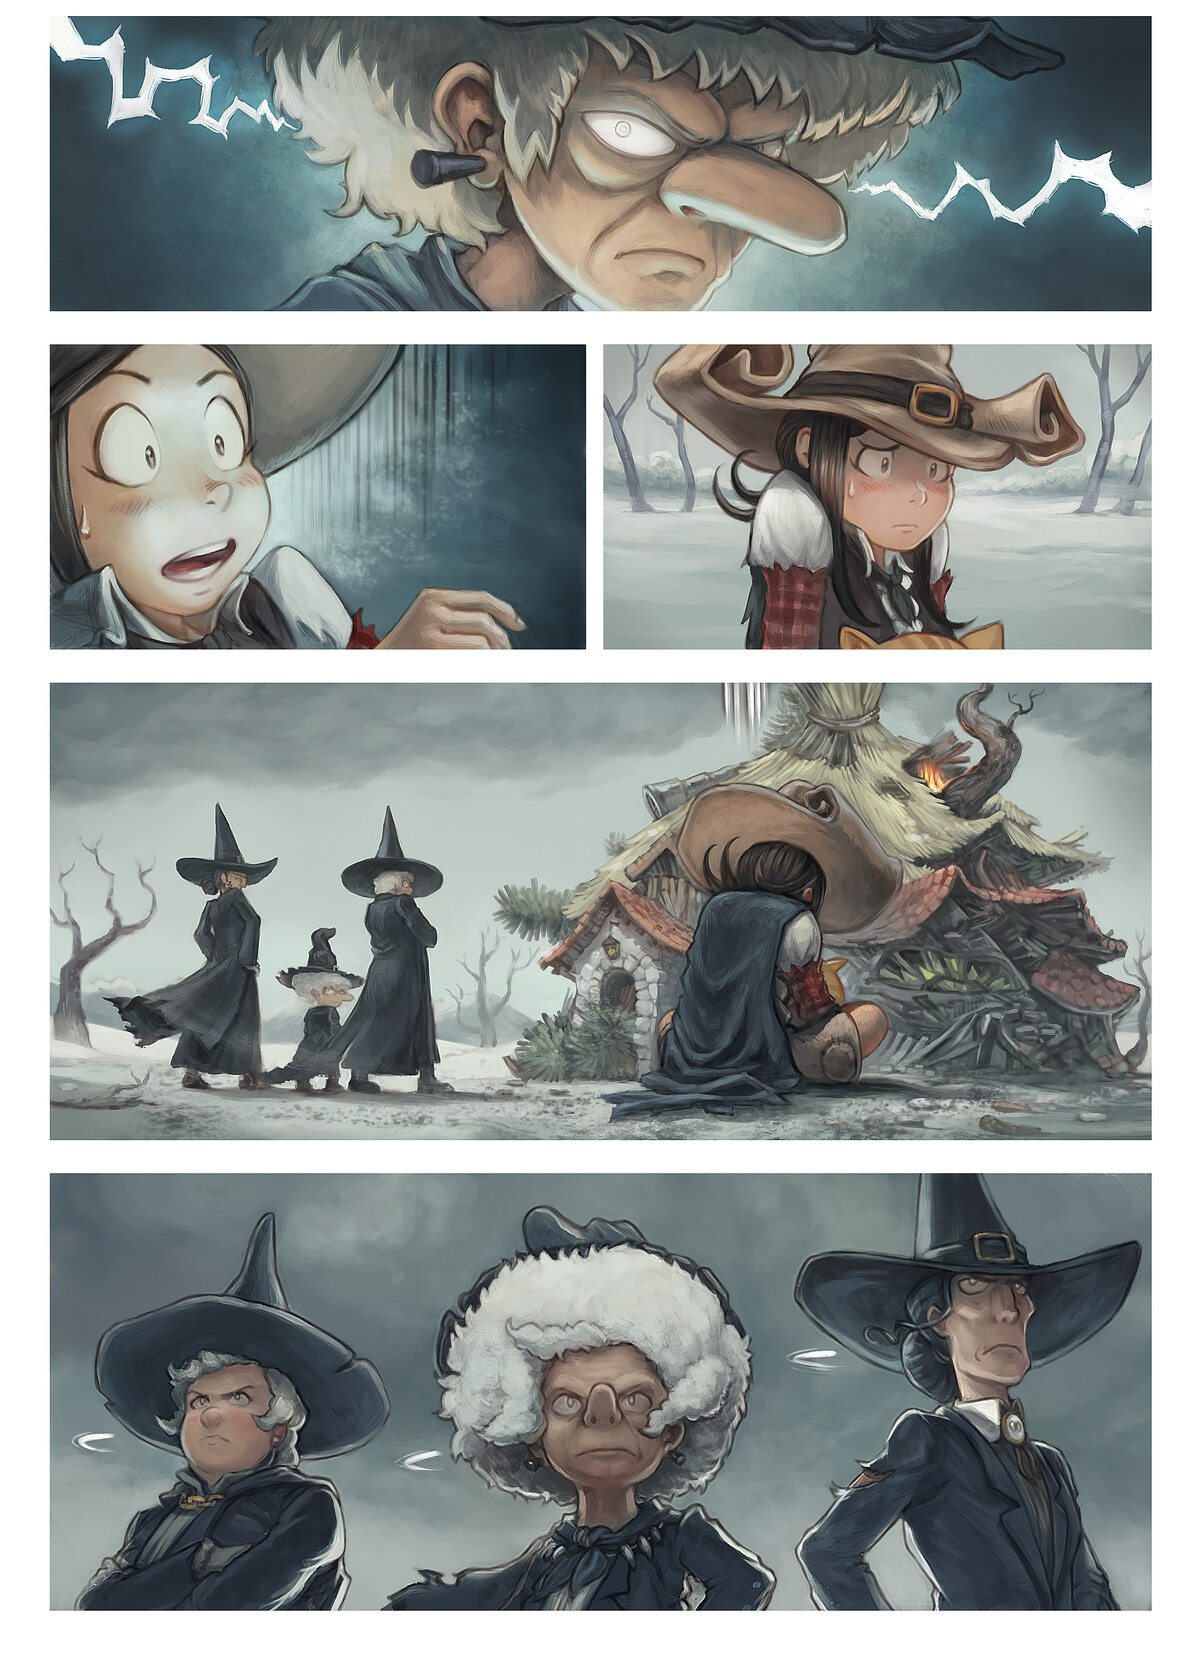 A webcomic page of Pepper&Carrot, епізод 25 [uk], стор. 2